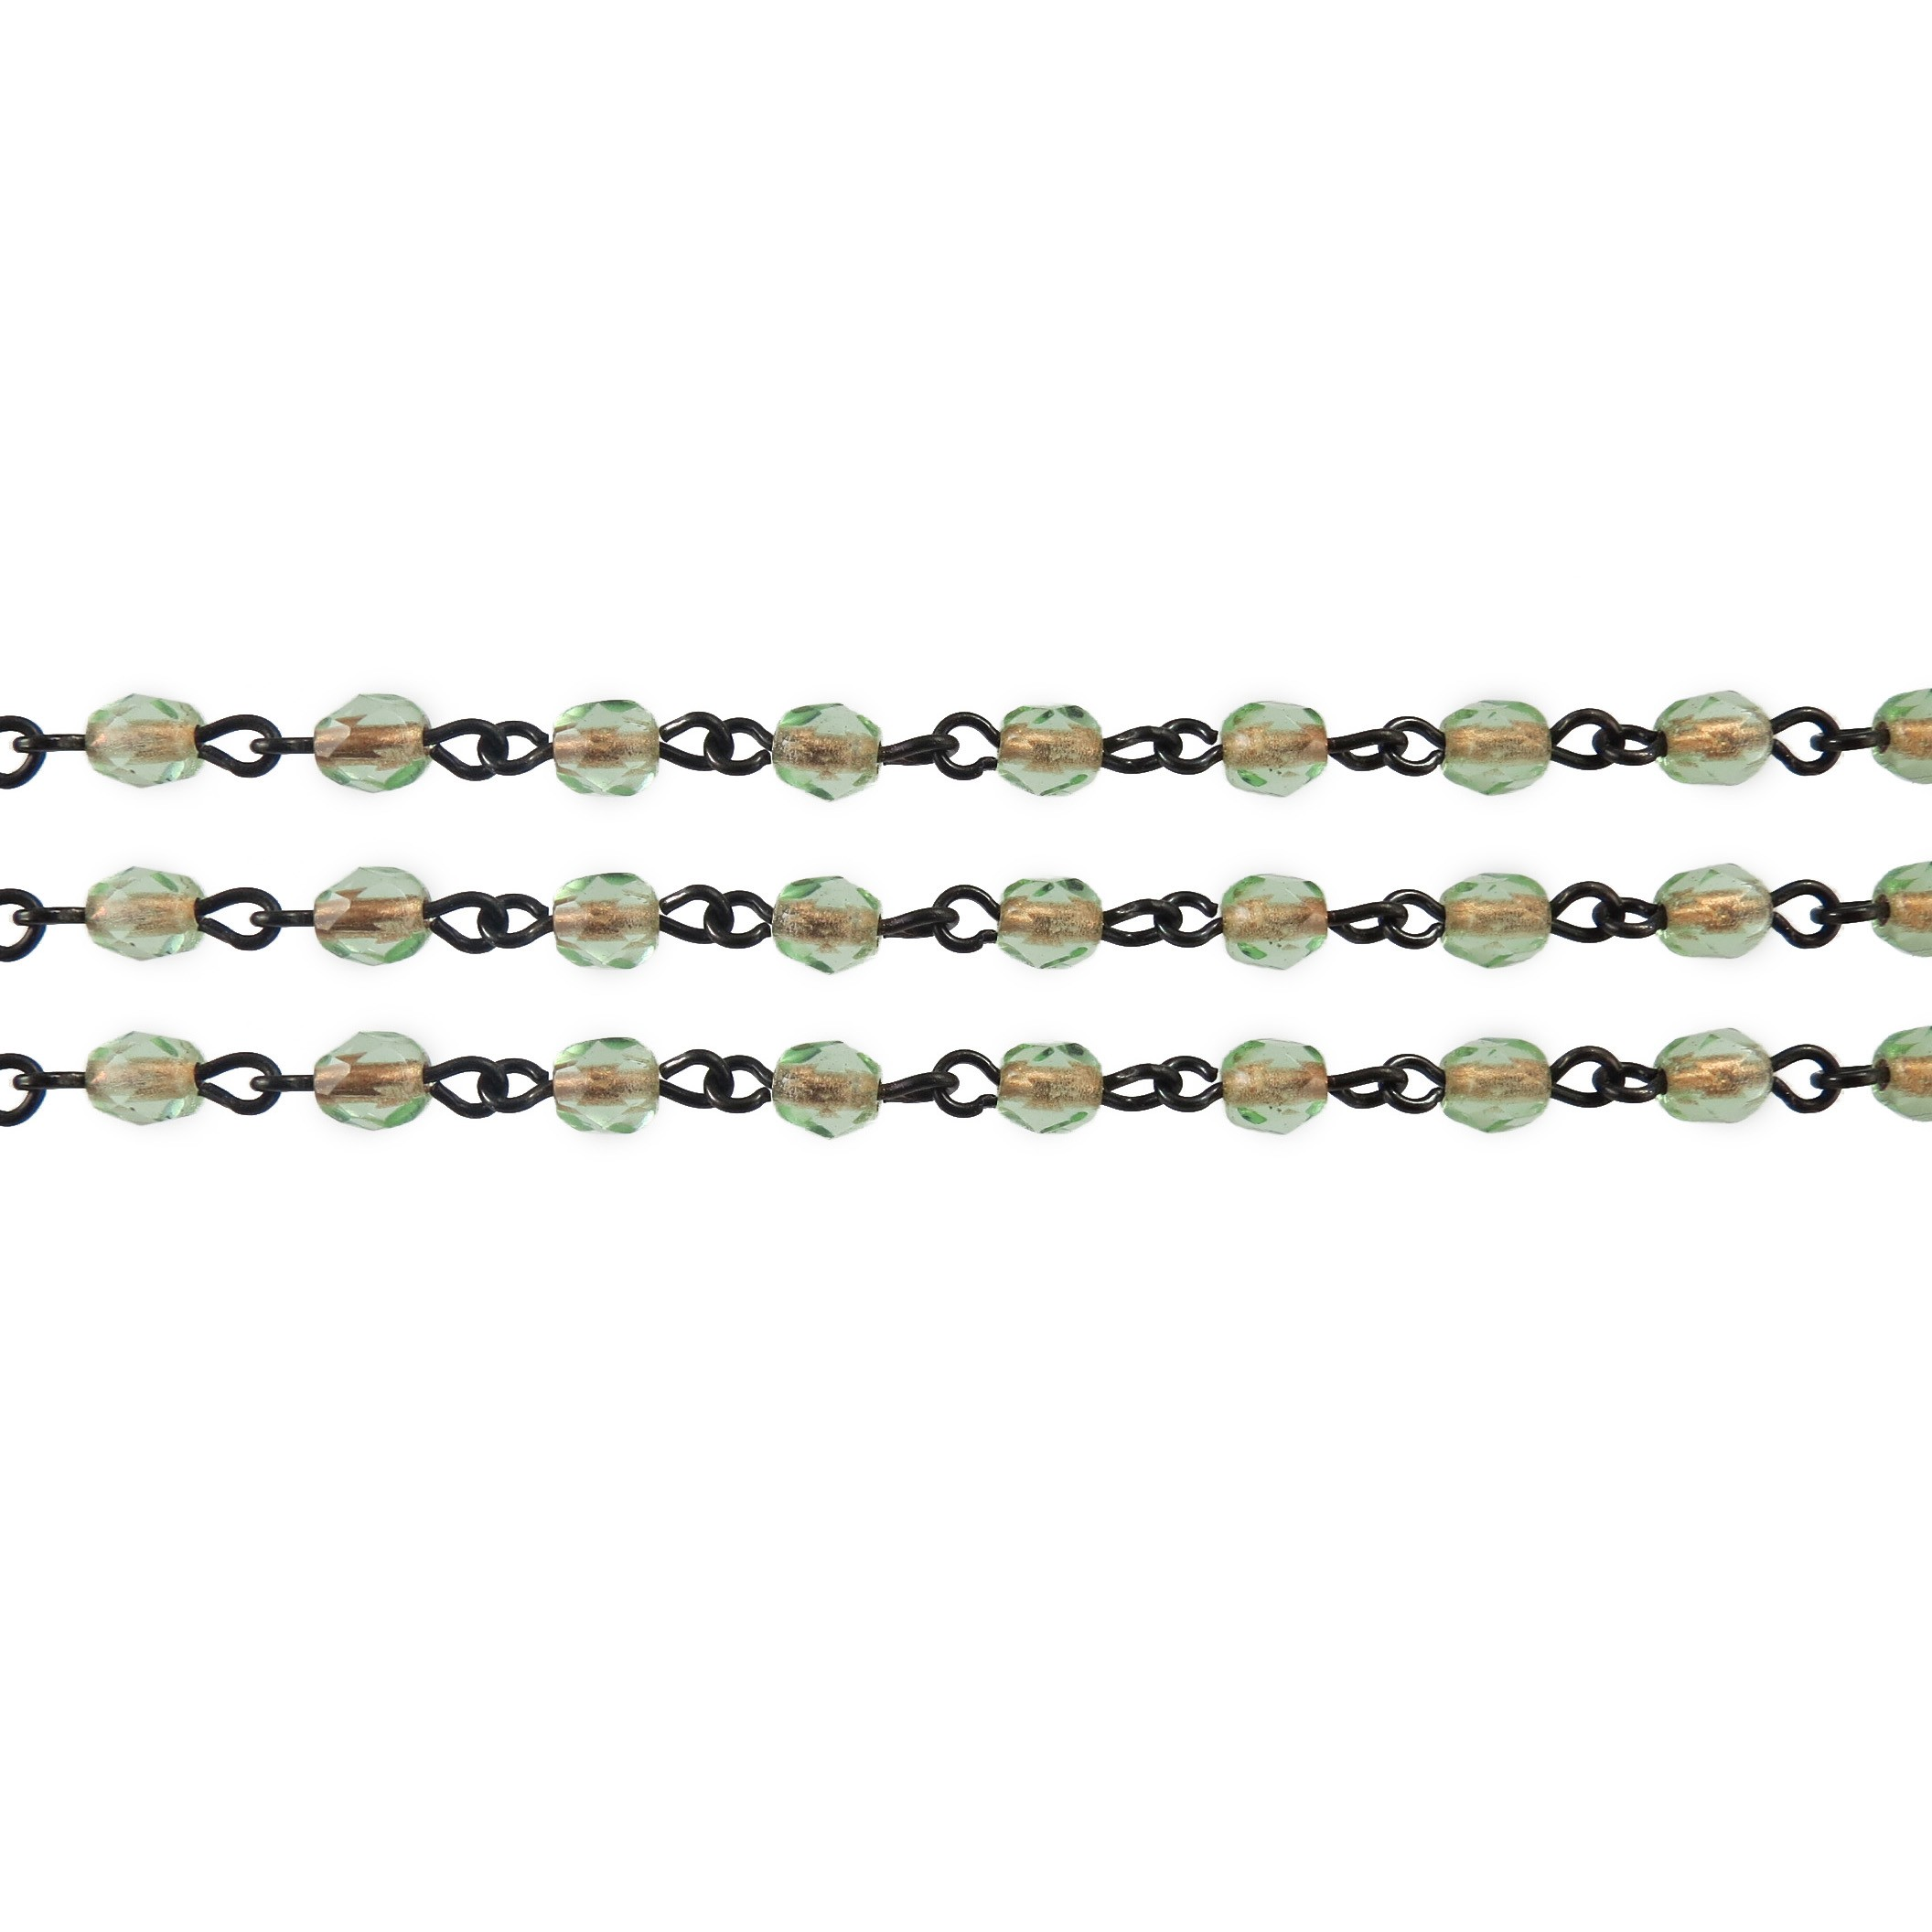 Czech Linked Rosary Chain, 4mm Peridot  Faceted Bead, Brass Linked Chain, (Sold by the Meter)